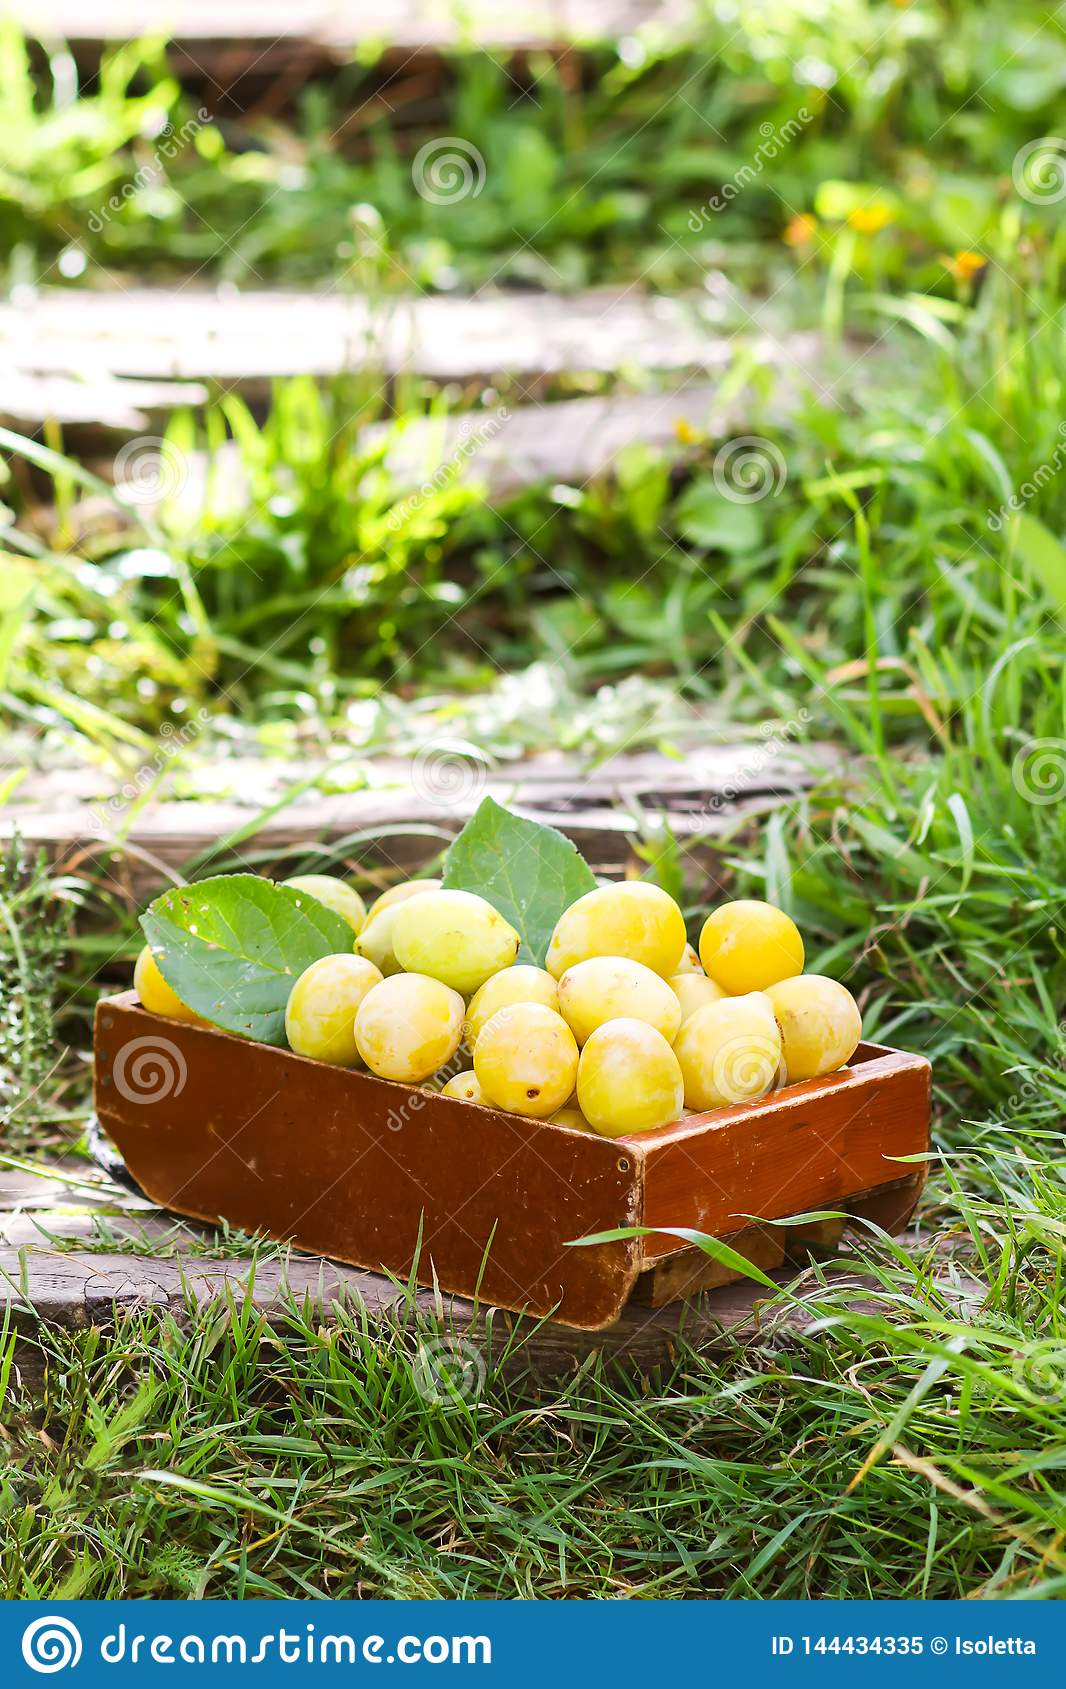 Fresh yellow plums. Ripe fruits in a wooden box on green summer grass